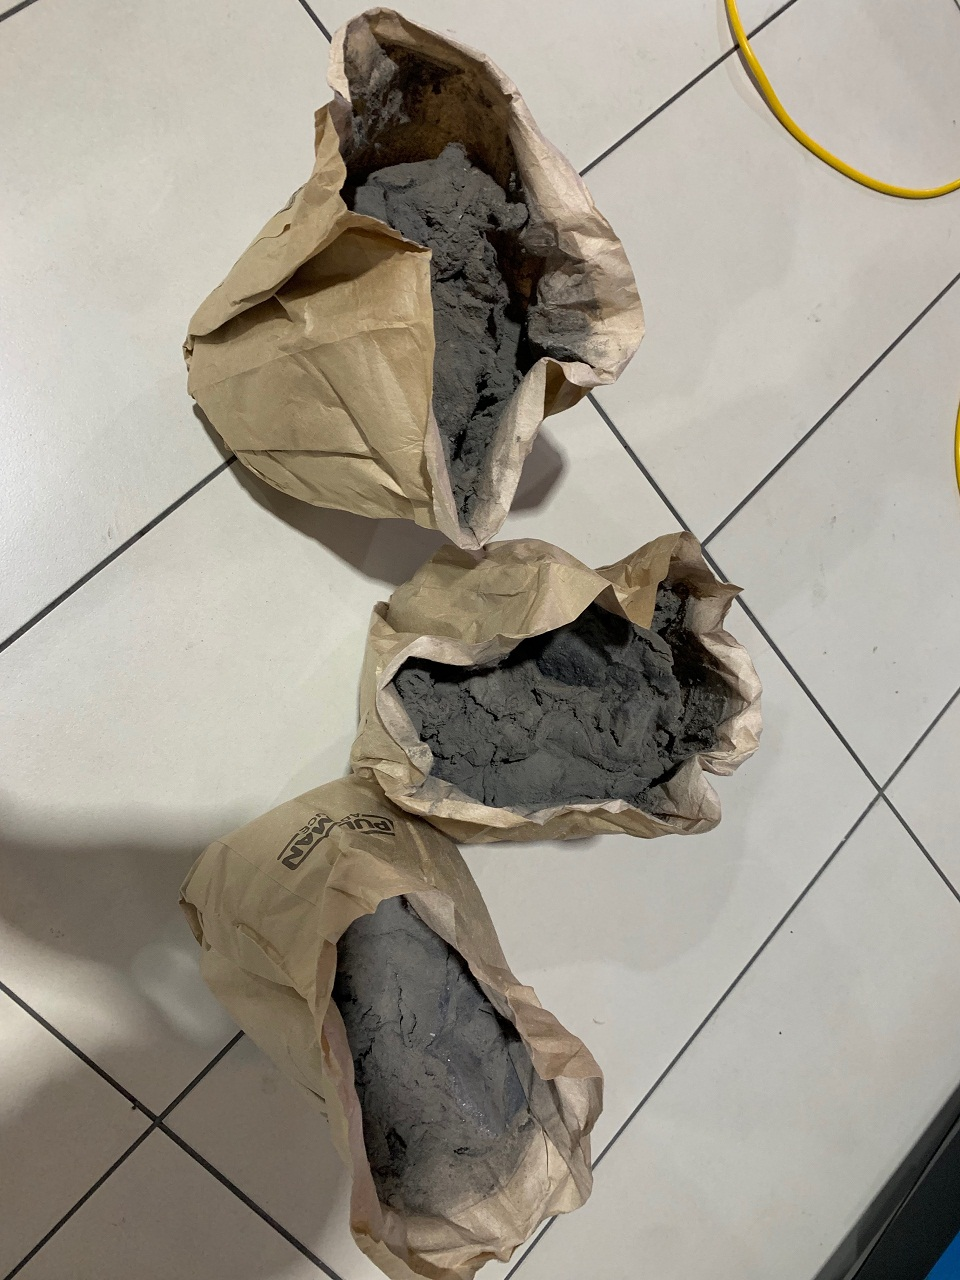 These are the dust bags from 3 vacuum cleaners  And Below - The Team - Aaron, myself, Mike, Wellington and Lee